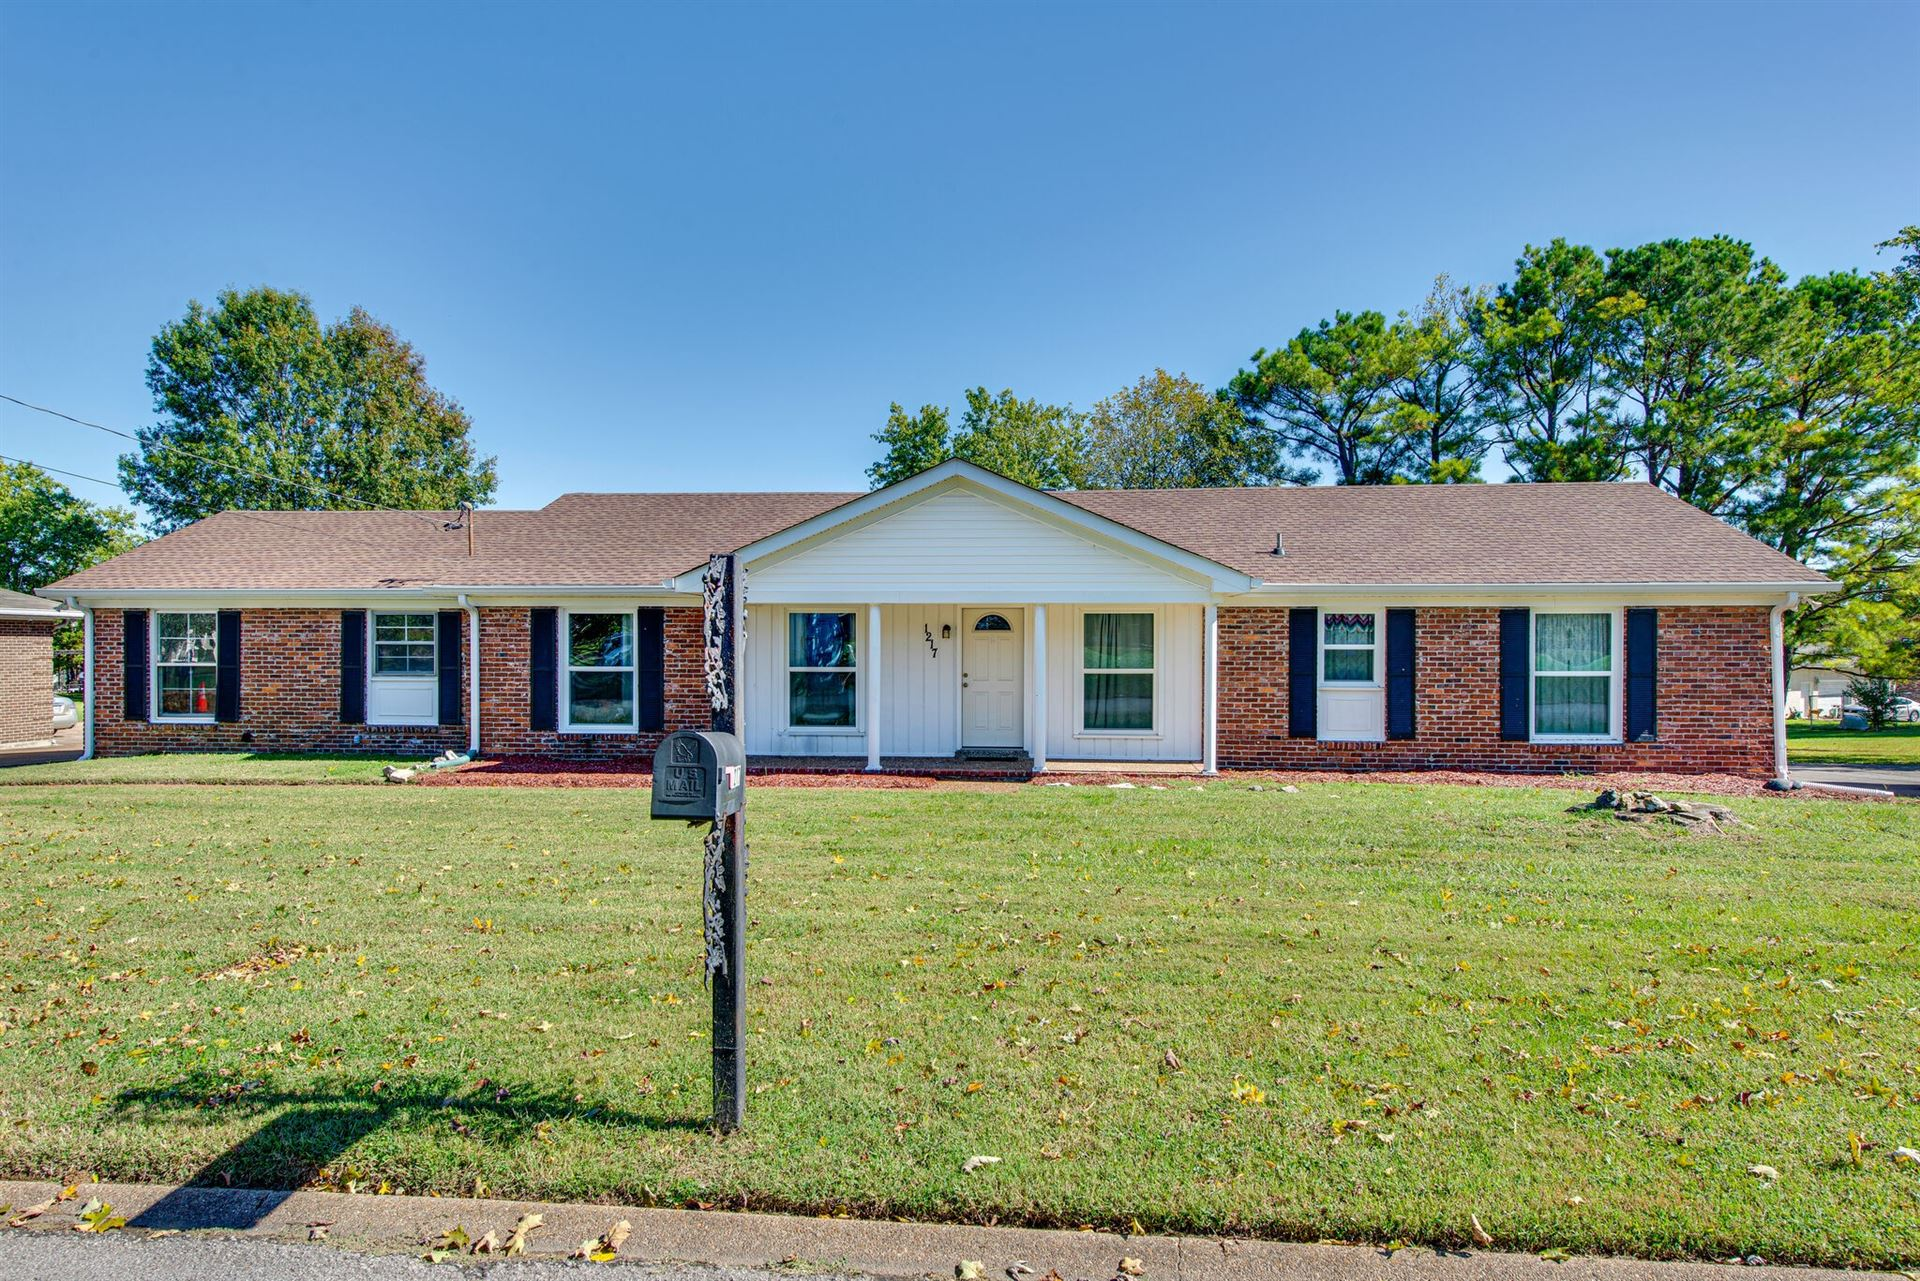 1217 Shawnee Rd, Madison, TN 37115 - MLS#: 2199016